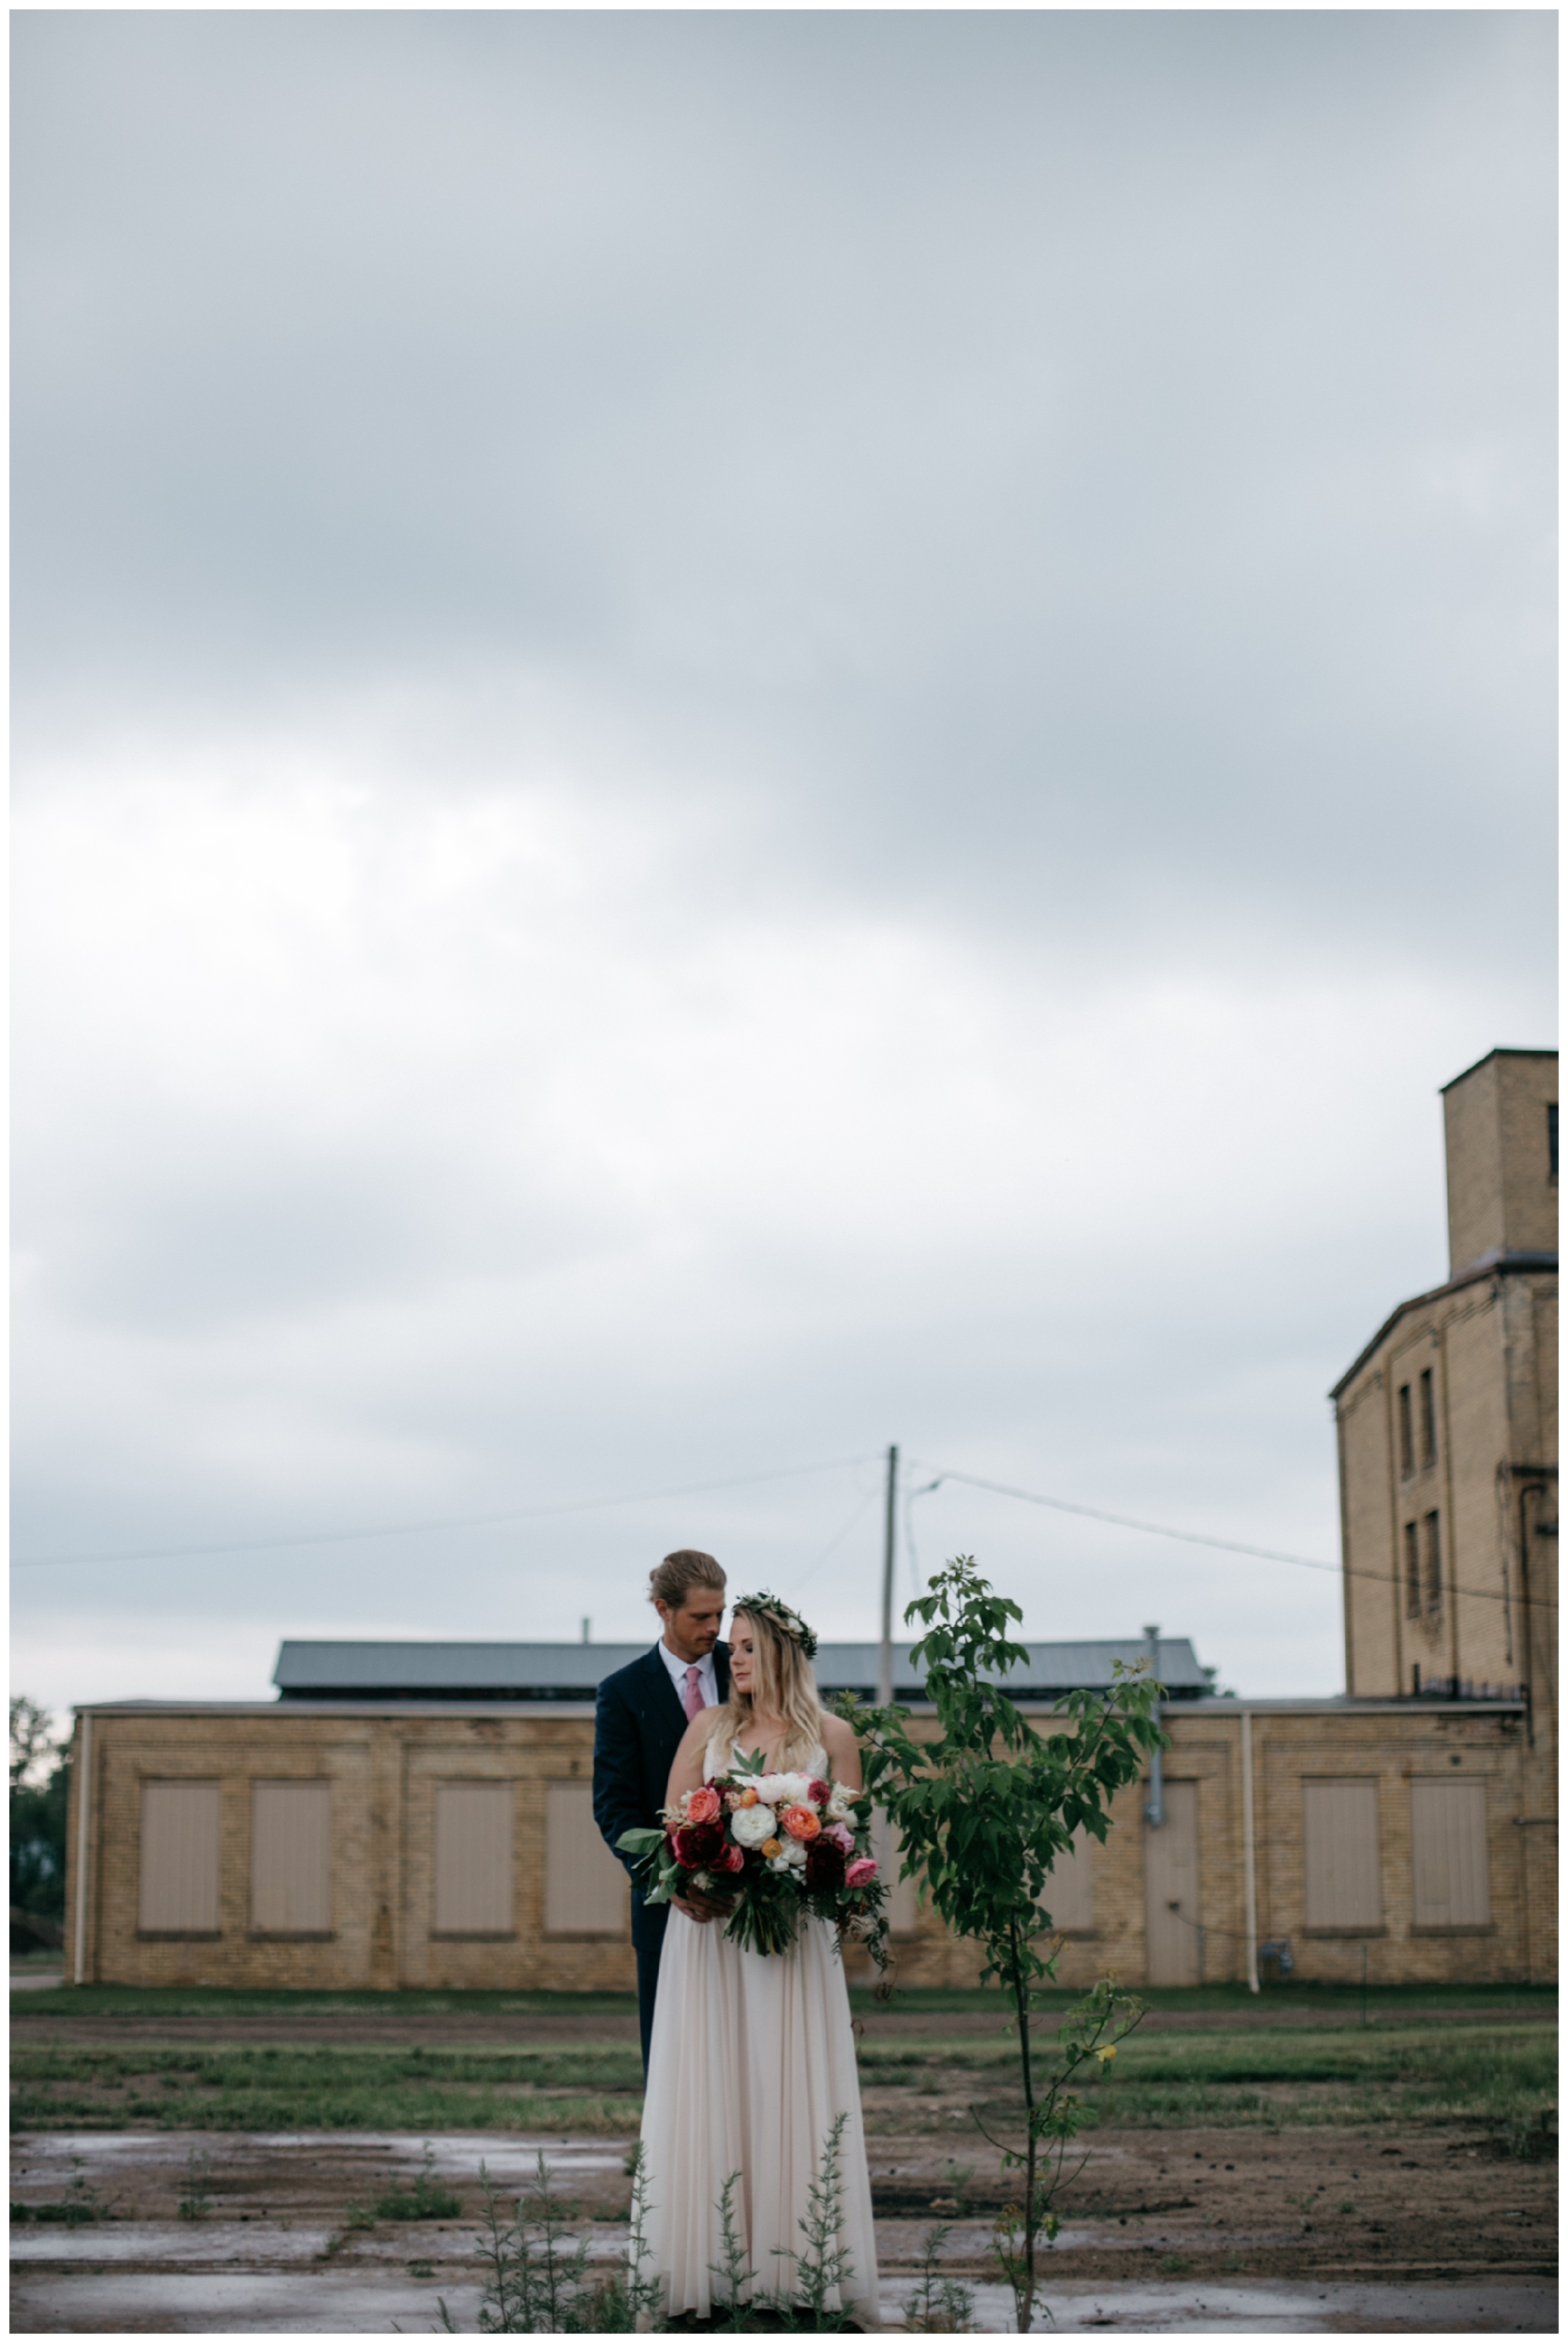 Romantic rainy wedding at the NP Event Space